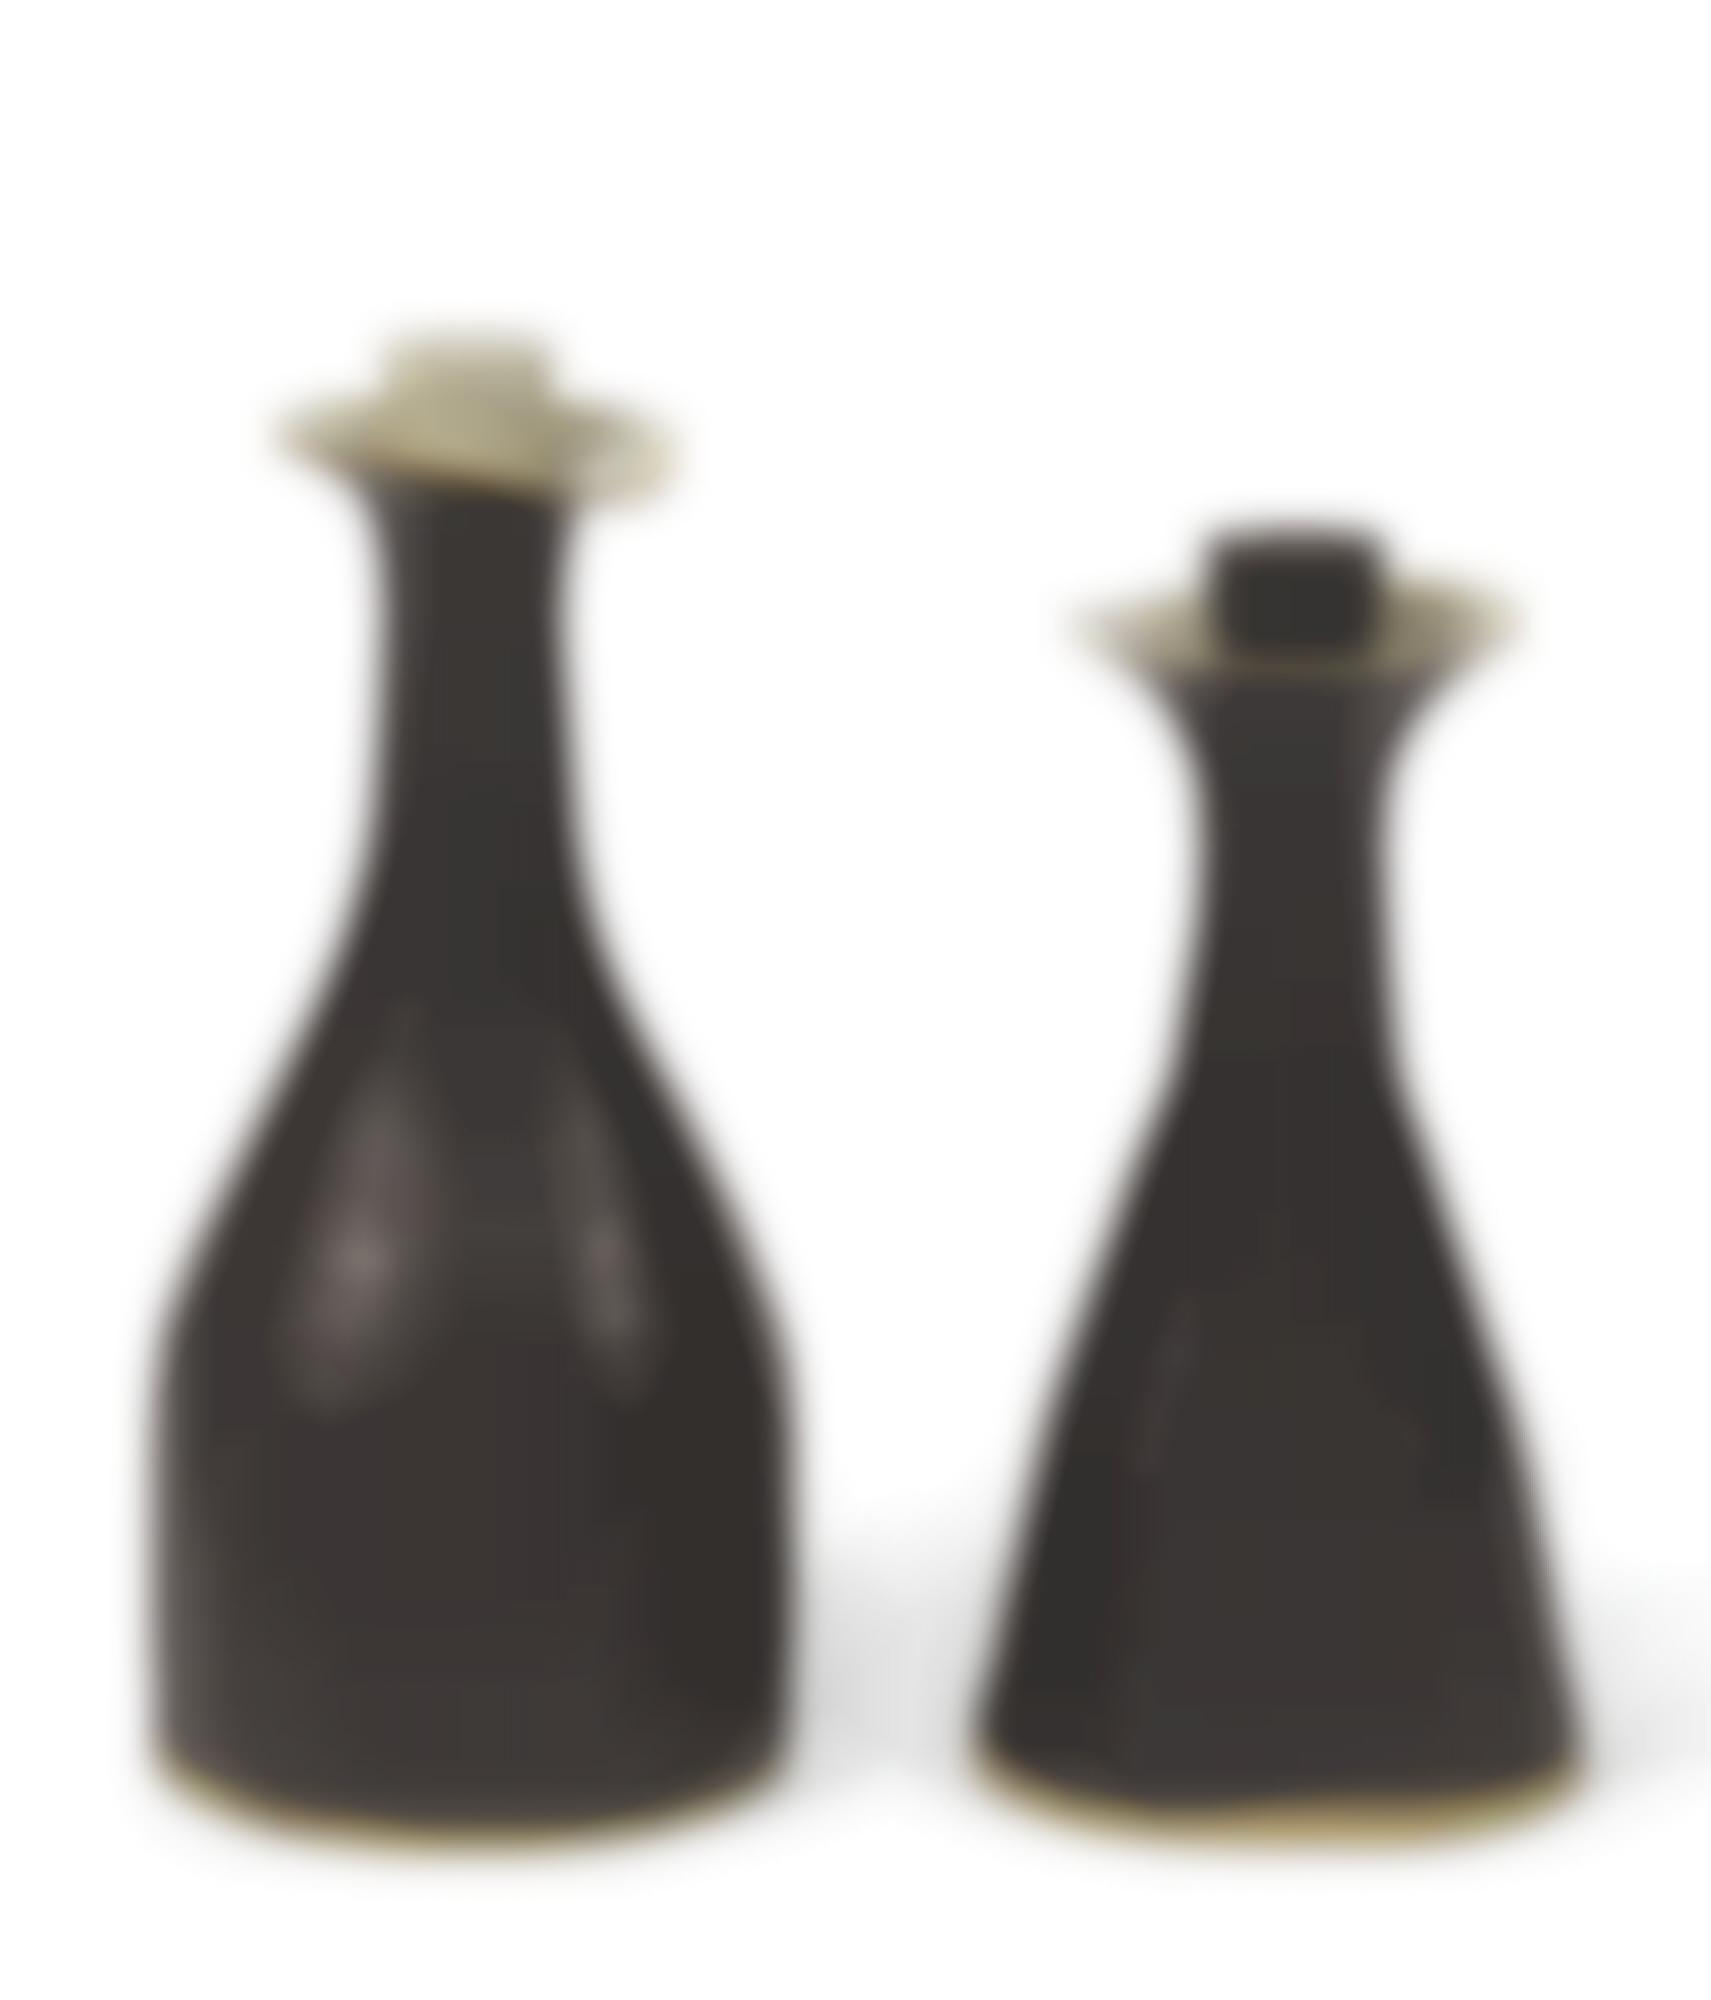 Lucie Rie-Oil And Vinegar Pourers-1950